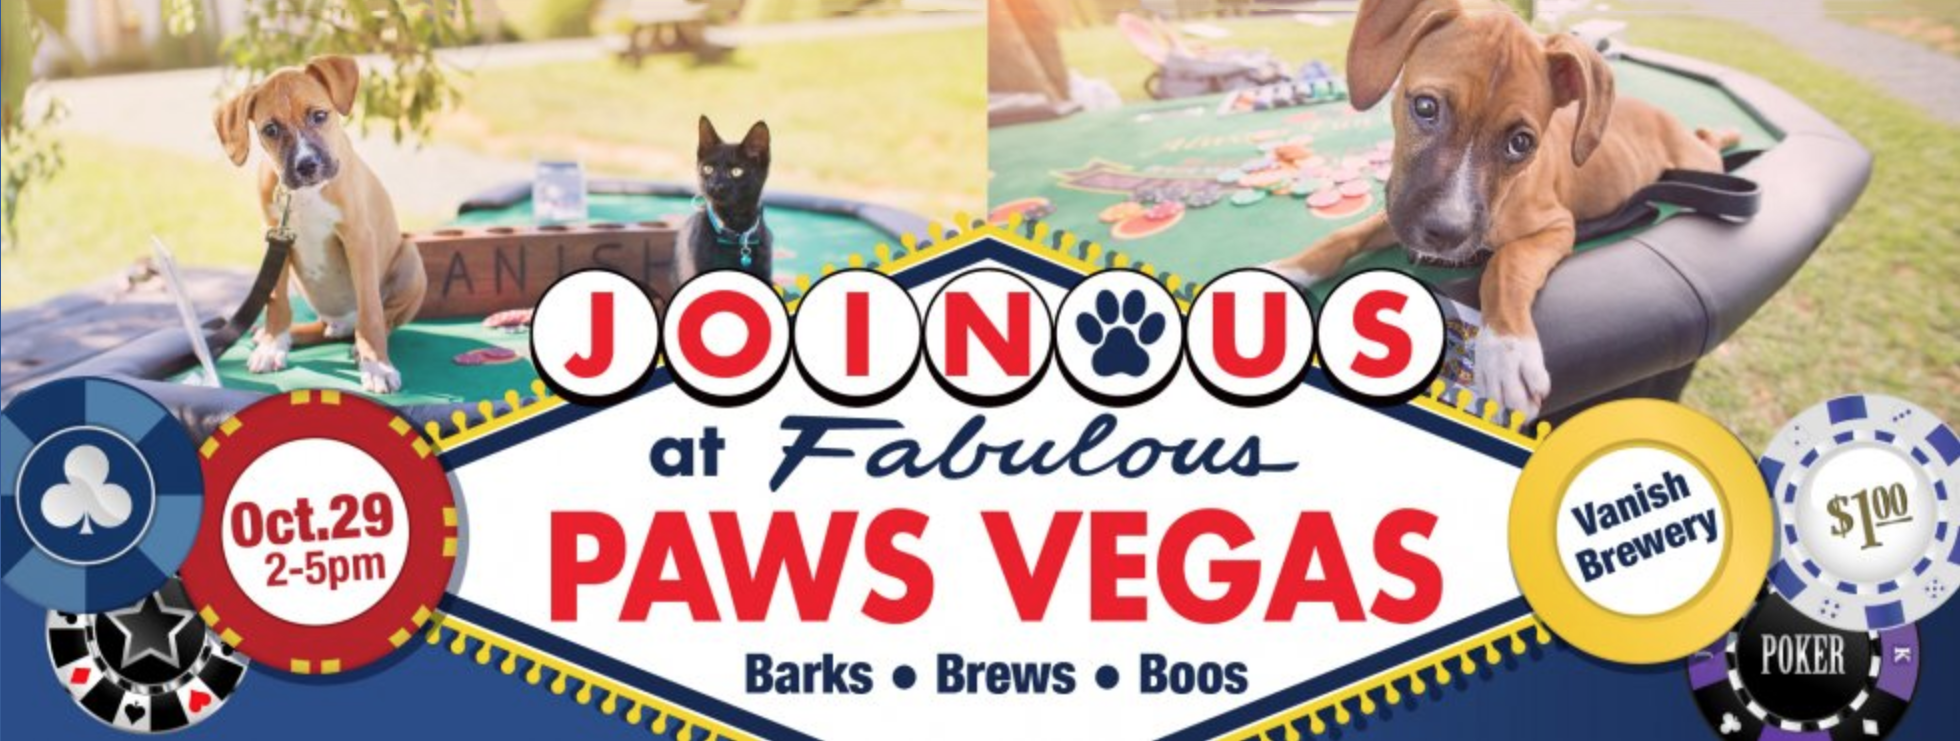 PAWS-VEGAS-Lost-Dog-Foundation-Charity-Event-Oct-2017-Invite-Banner.png